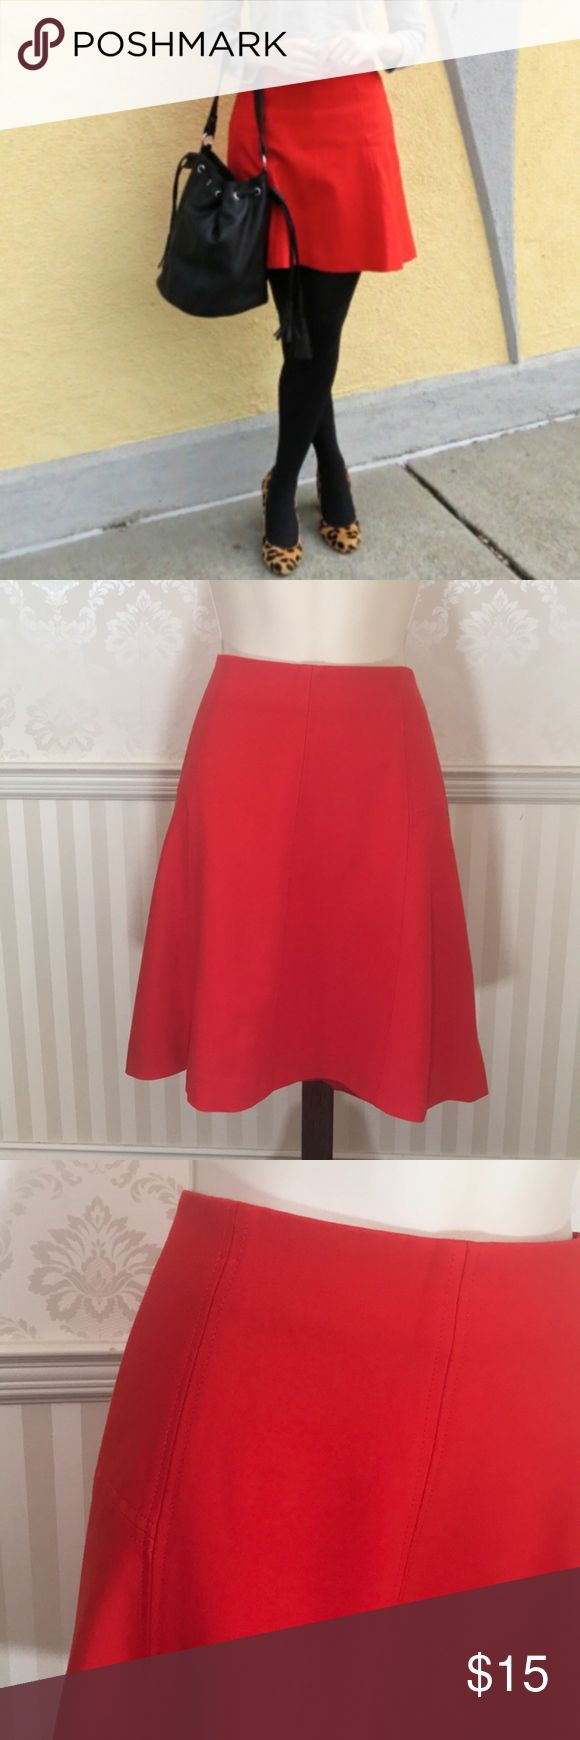 "NWOT Ann Taylor LOFT Red Ponte Flared Skirt NWOT Ann Taylor LOFT flared skirt in absolutely perfect condition.  Vibrant bright red color.  This skirt is made with a blend of soft, resilient ponte & rayon for a soft draping effect & a smooth, crisp look.  Perfectly placed seams create a flattering & feminine silhouette.  Concealed back zipper.  Fully lined.  Length is about 19,"" waist is approximately 34."" 67% rayon, 28% nylon, 5% spandex; lining is 100% polyester.  Size12. LOFT Skirts"